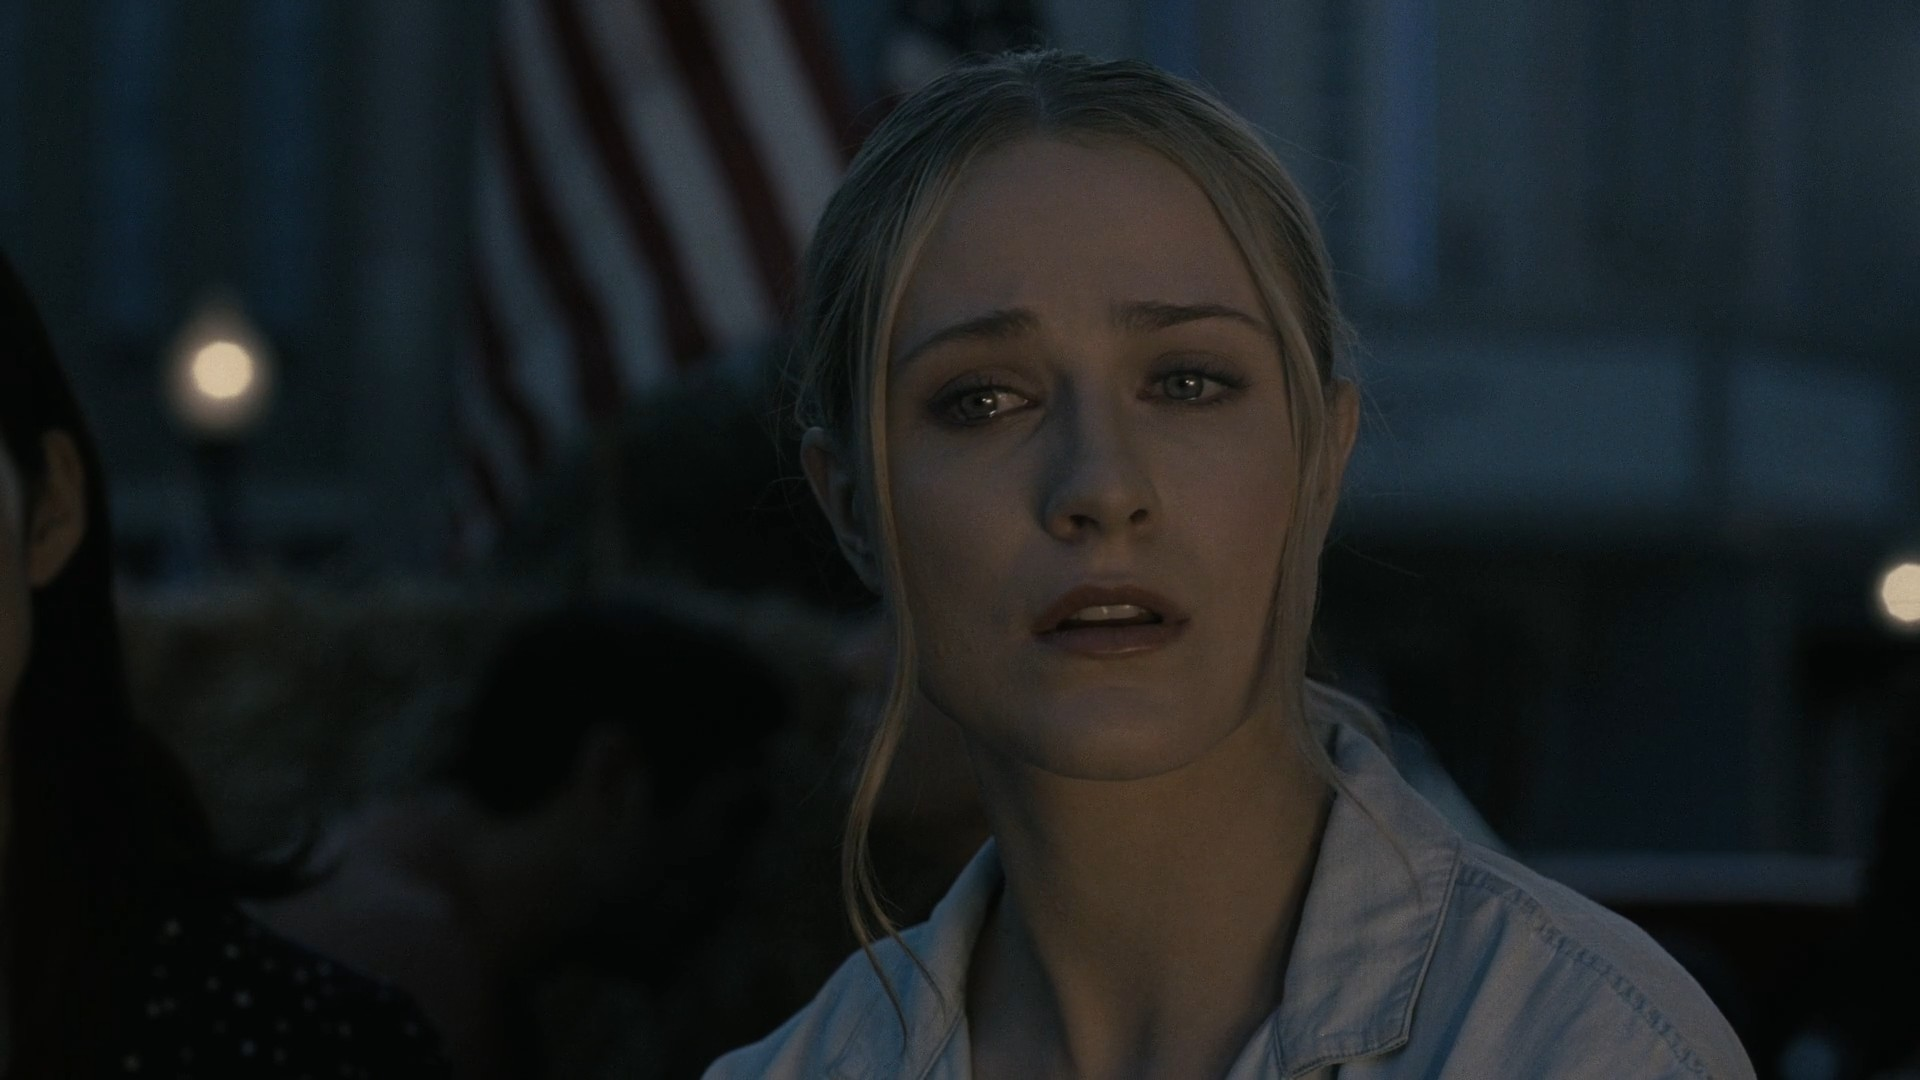 Westworld S03E08 Crisis Theory - Dolores